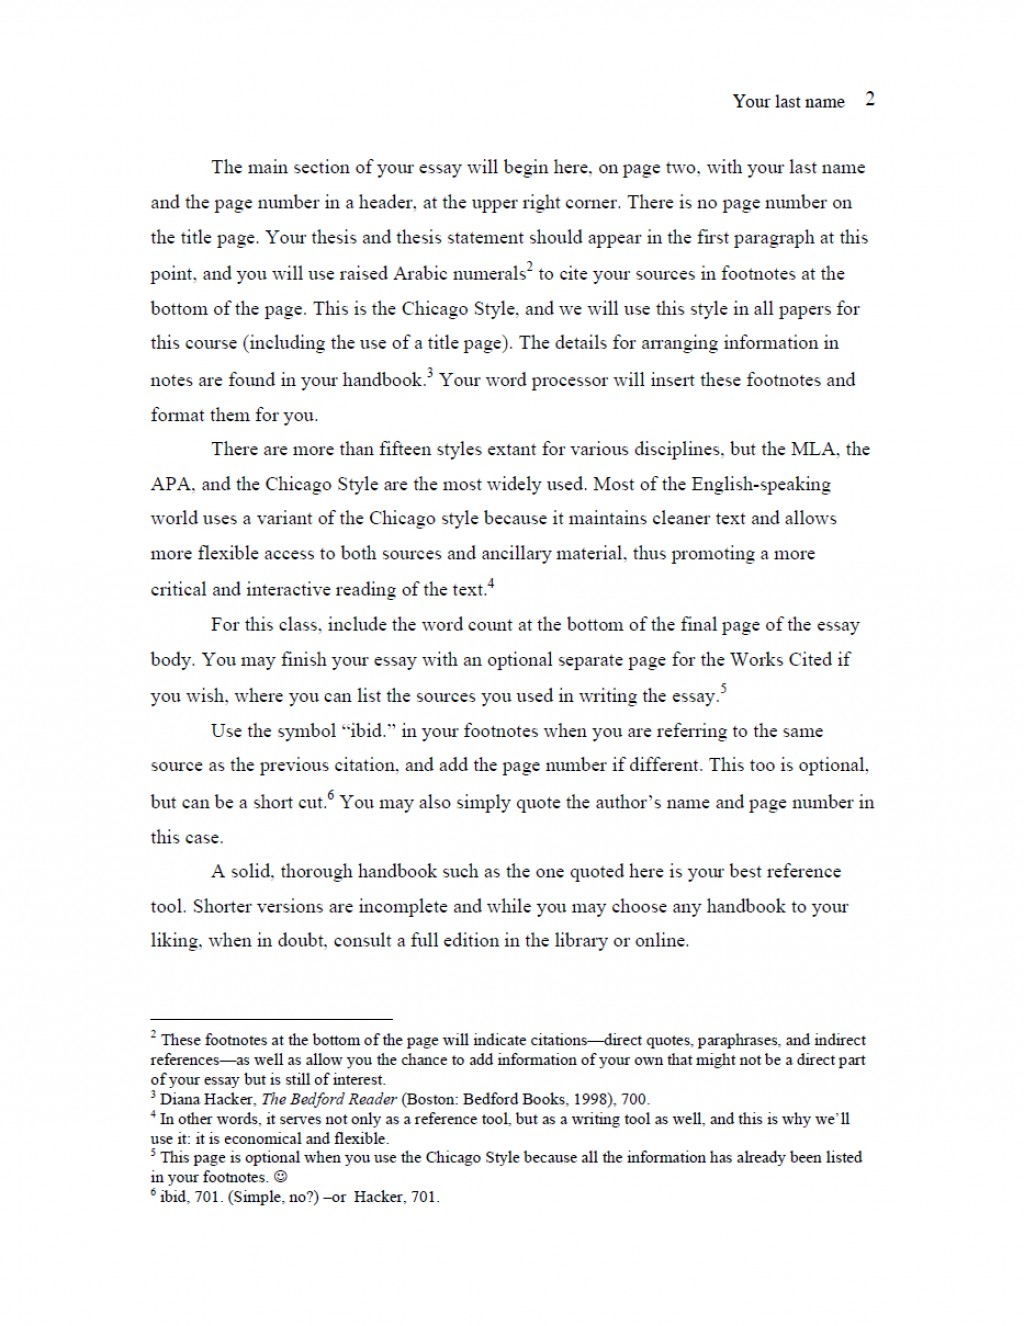 006 Template For Research Paper Chicago Style Paper2 Striking Ieee Word Outline Format Of Front Page Large